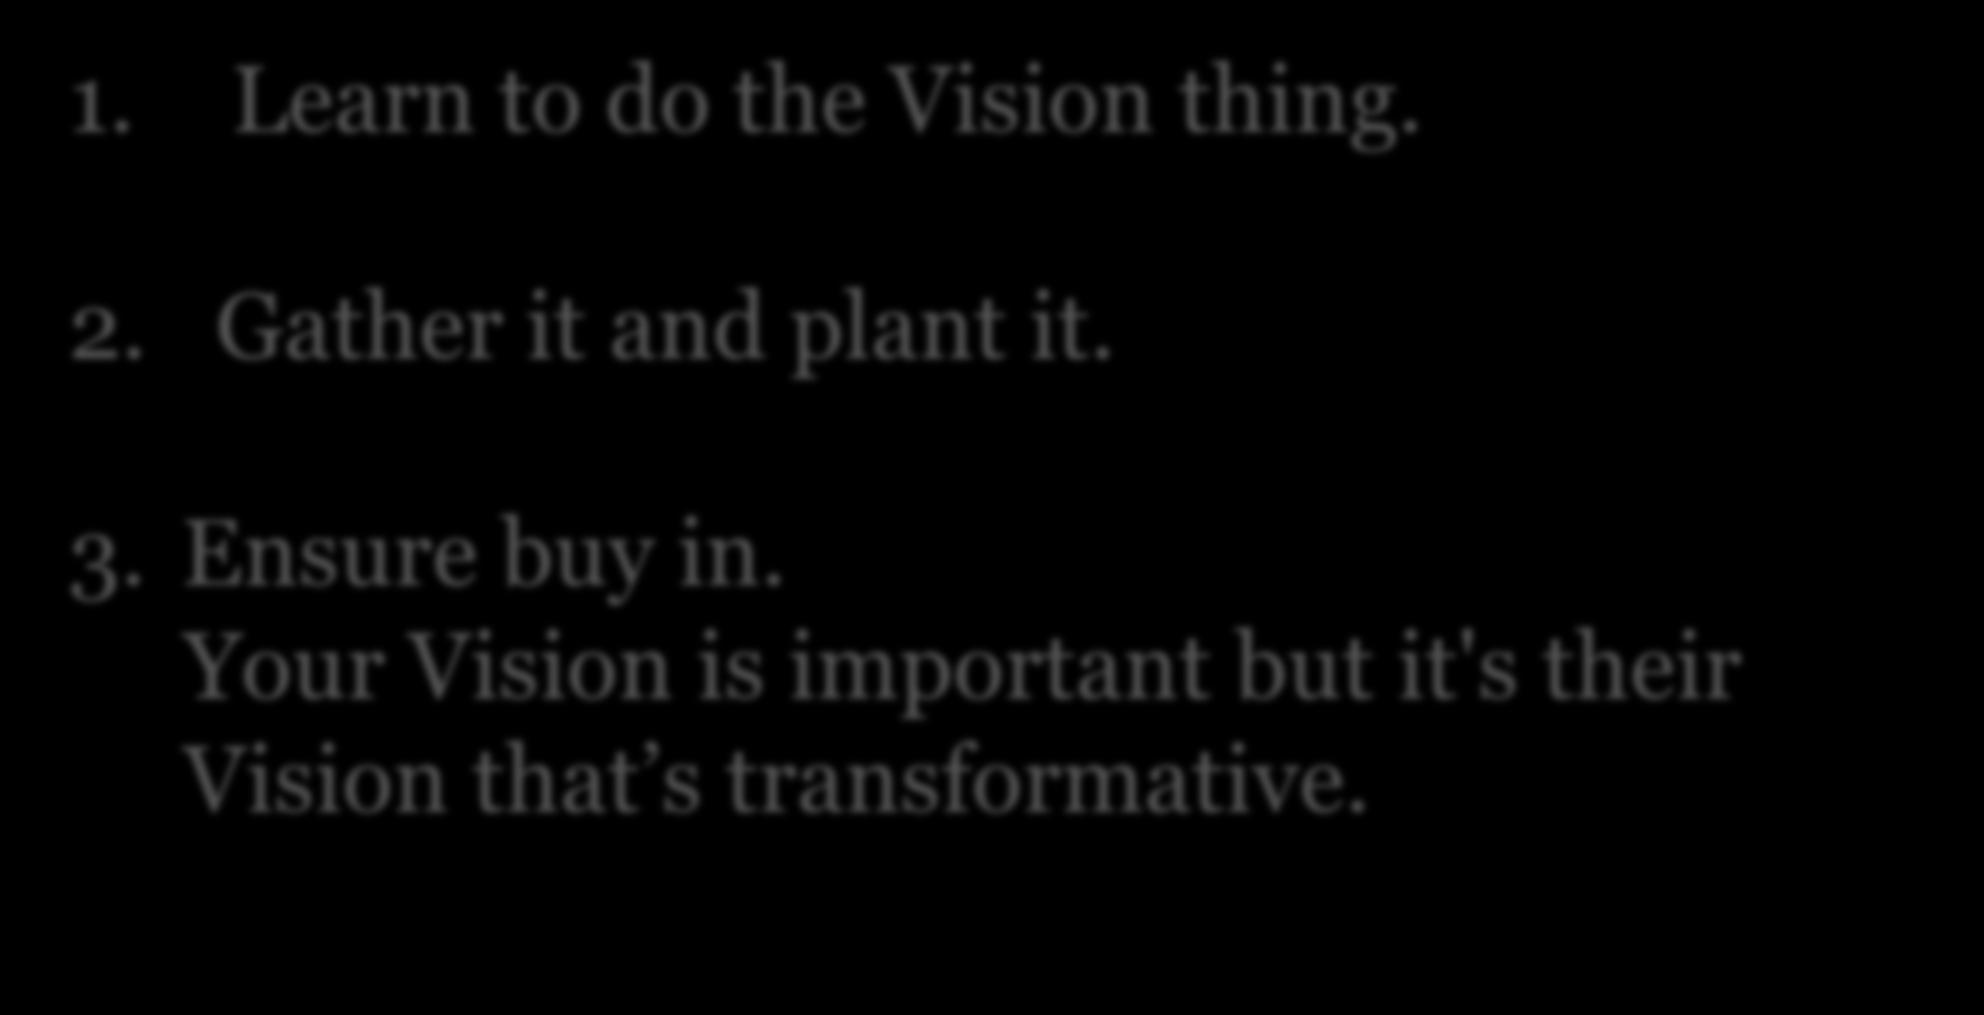 Visionary Leadership 1. Learn to do the Vision thing. 2. Gather it and plant it. 3.